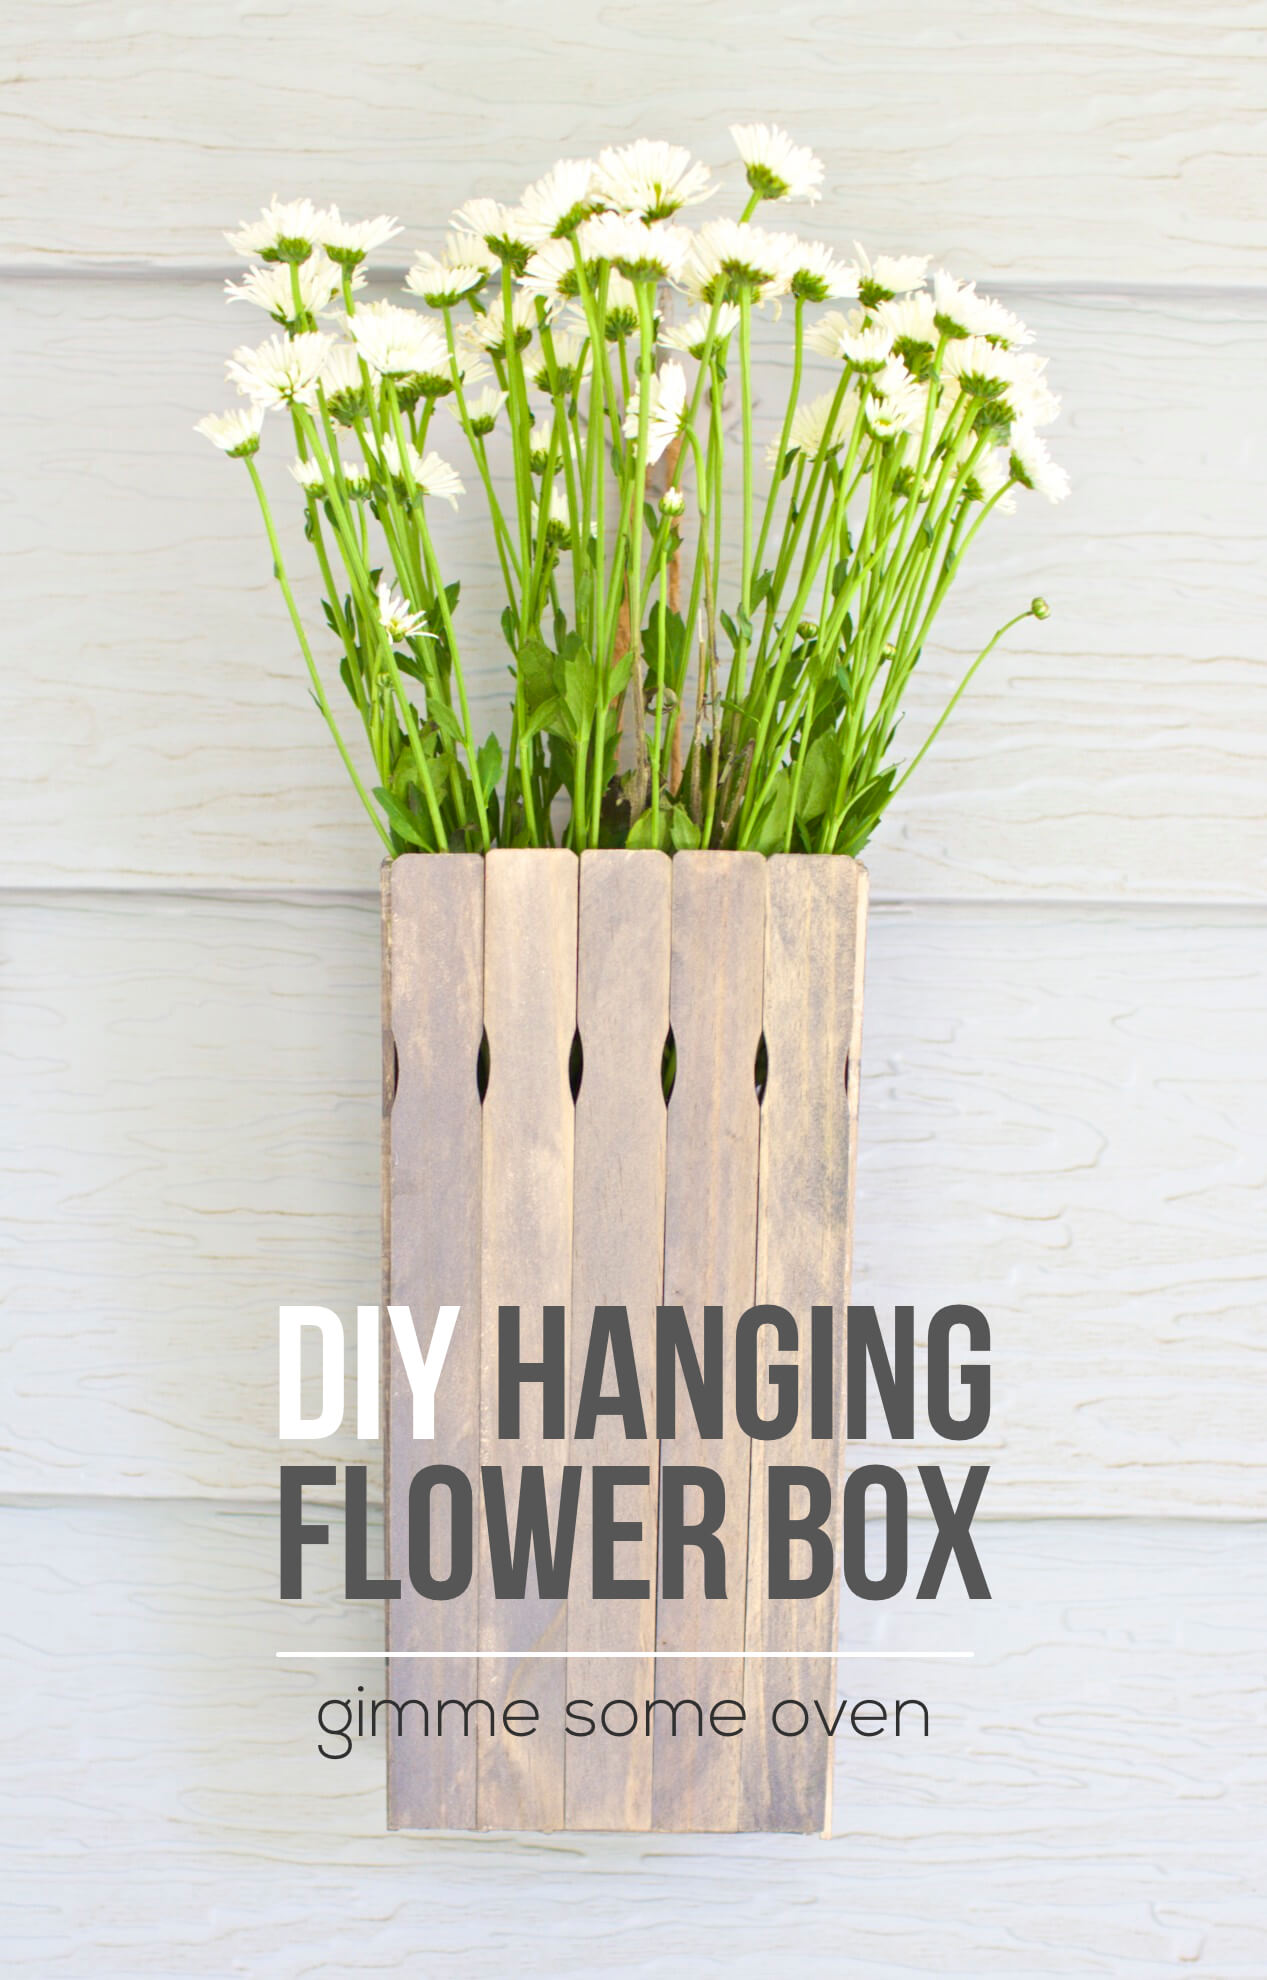 DIY Hanging Flower Box | Gimme Some Oven